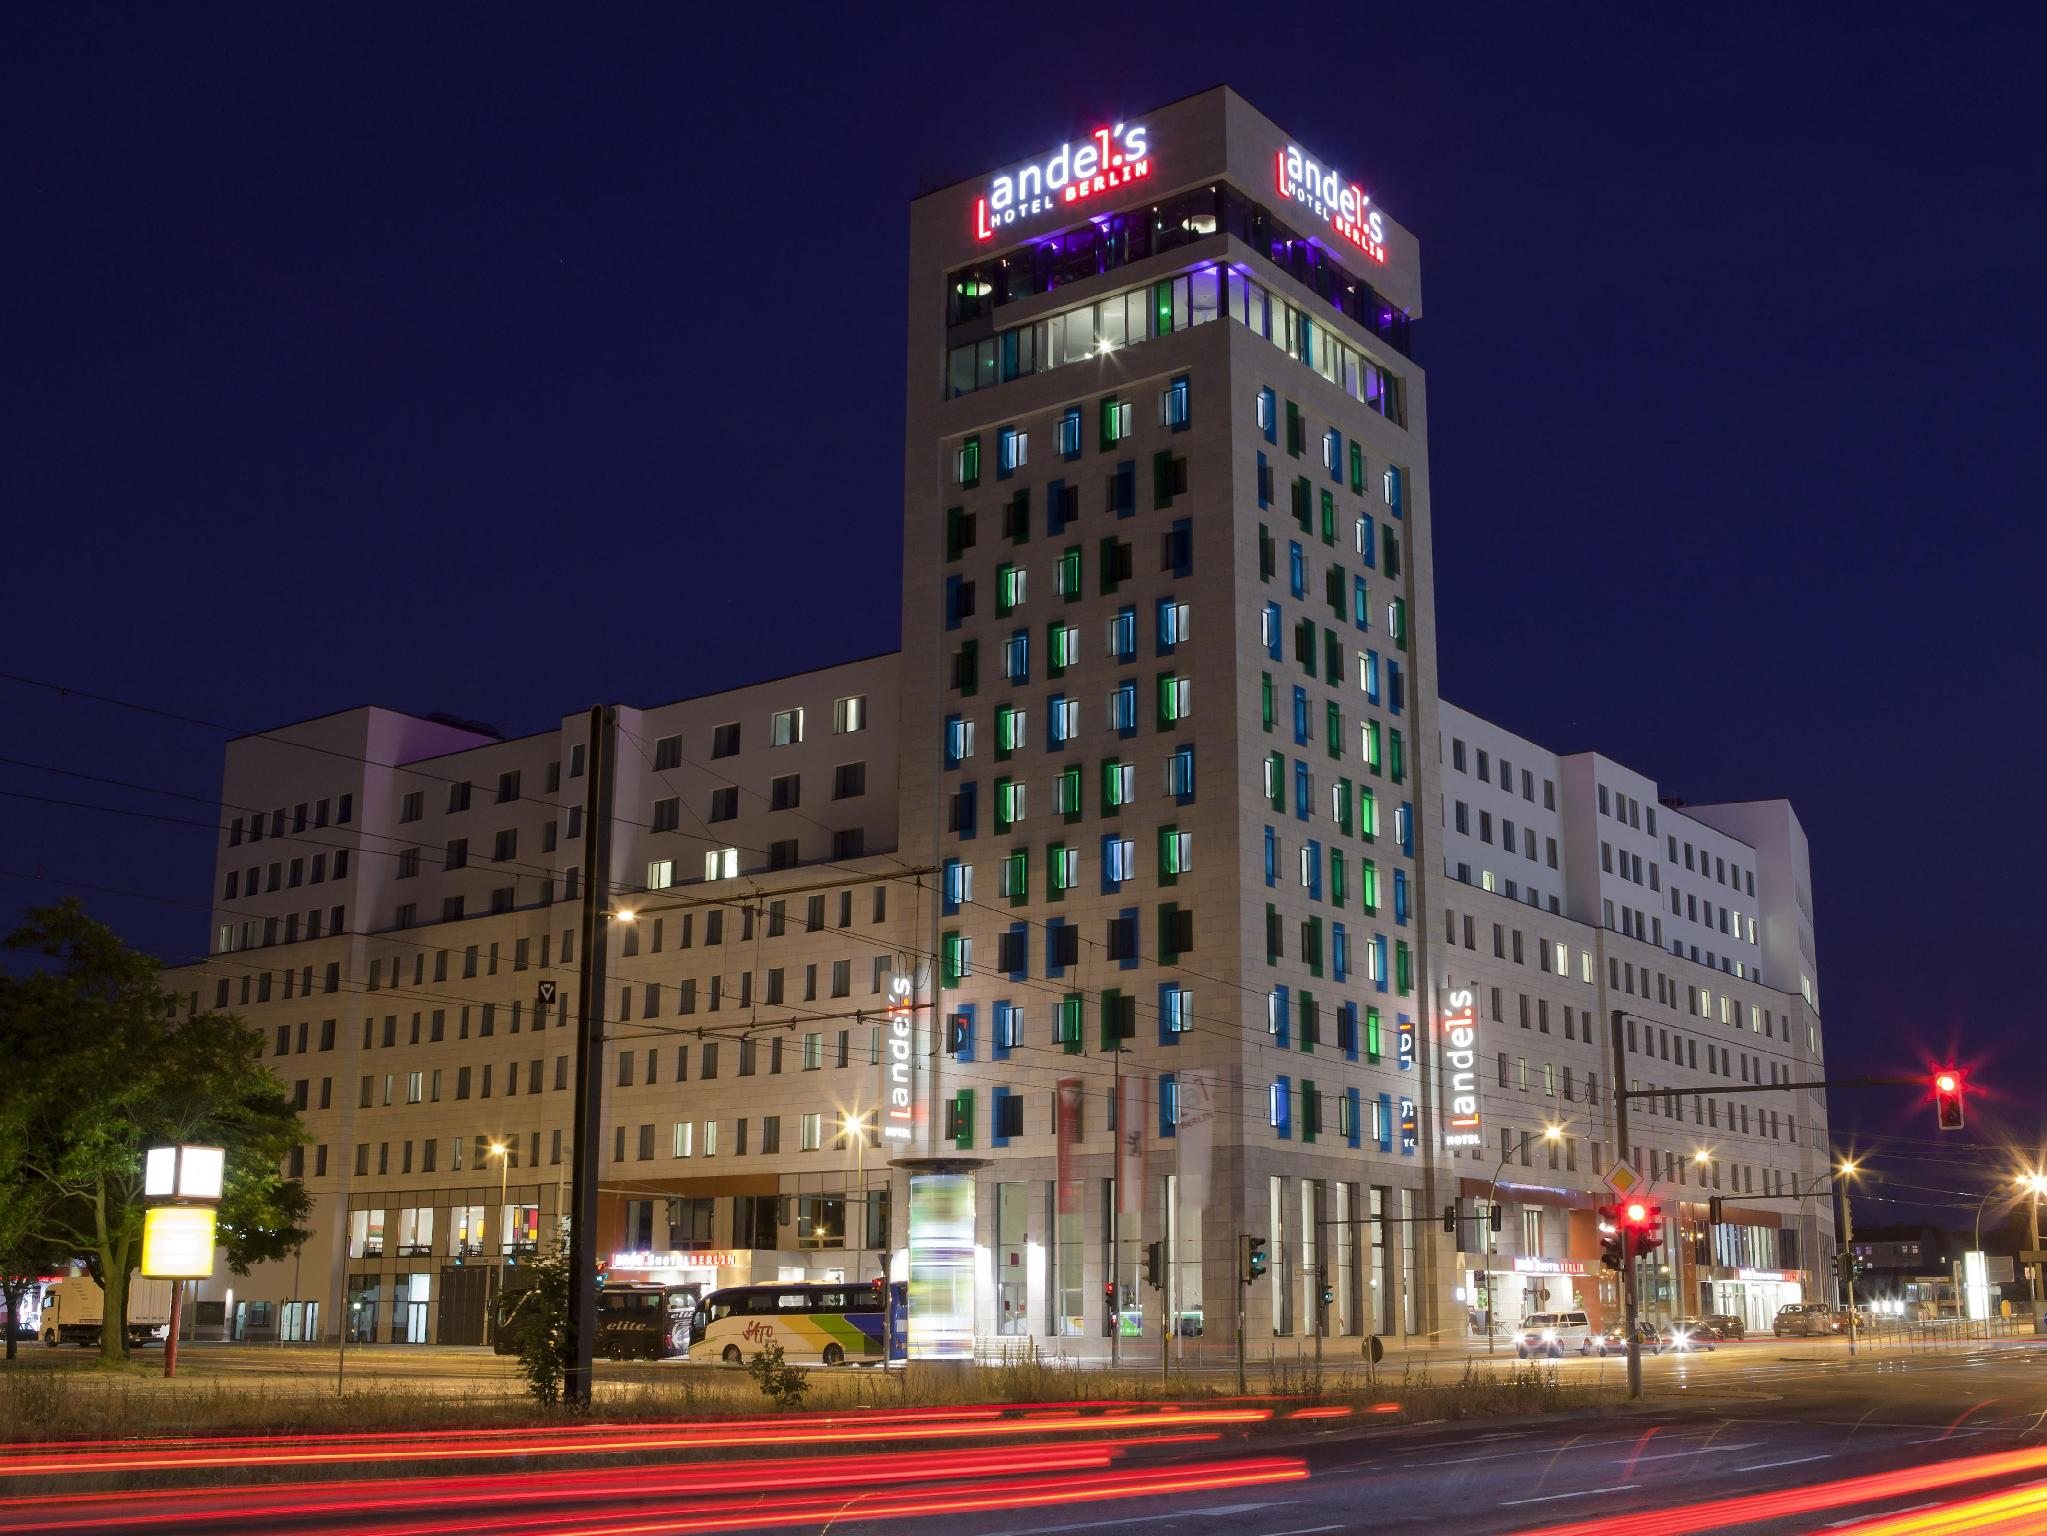 andel's Hotel Berlin, managed by Vienna International Hotels and Resorts Berliini